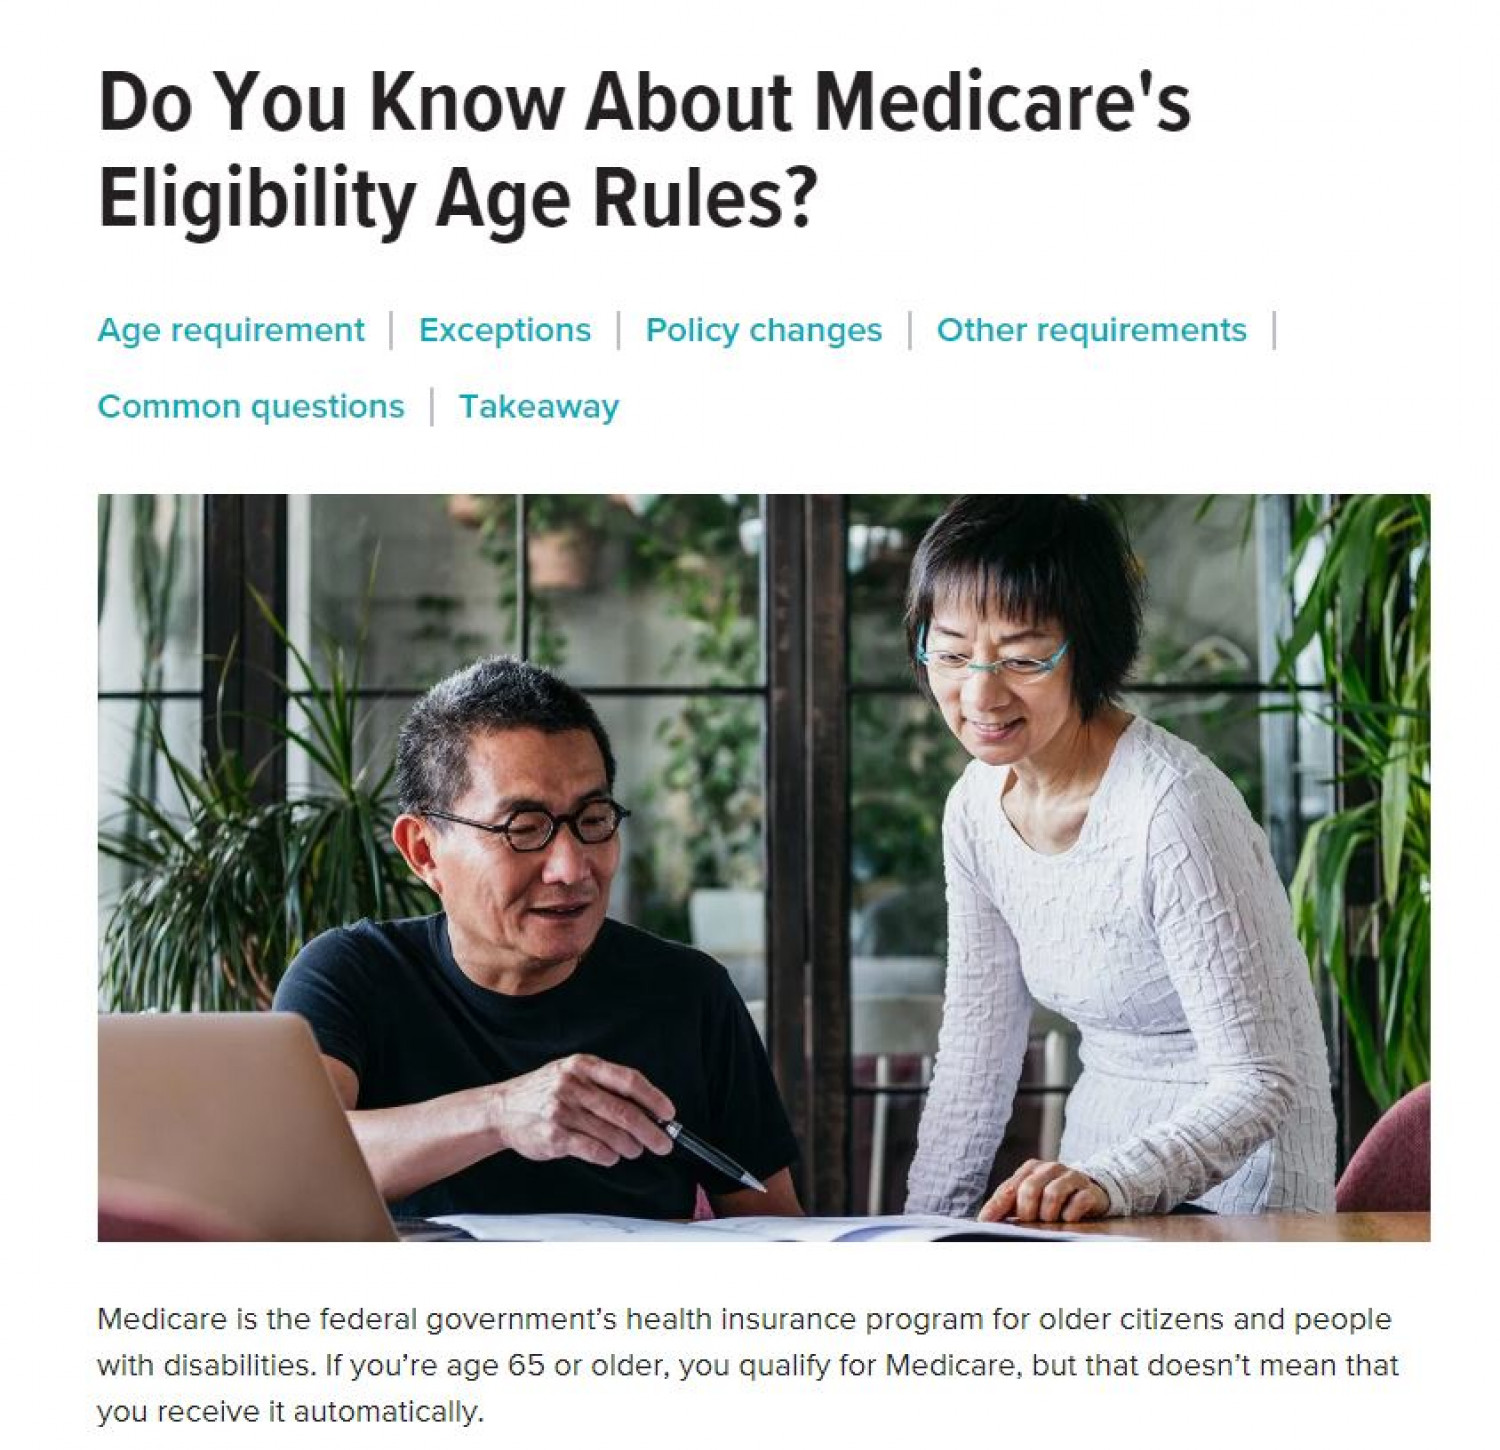 Do You Know About Medicare's Eligibility Age Rules? Infographic